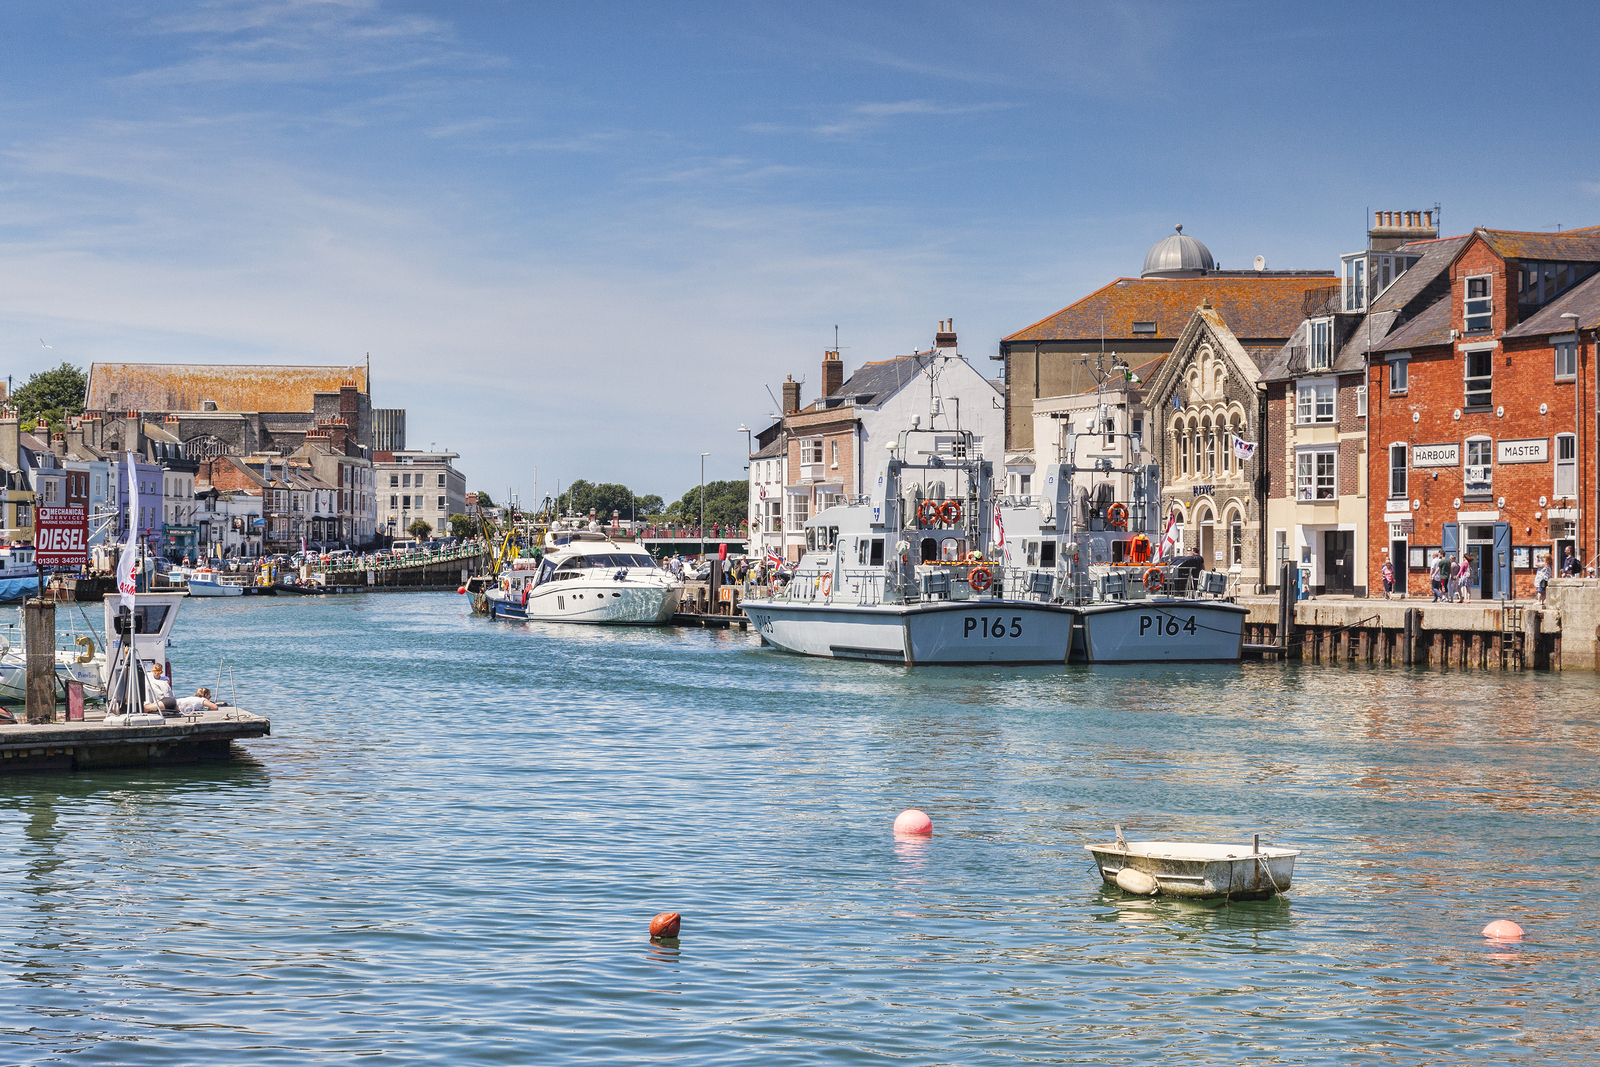 What Are The Top 10 Most Popular UK Holiday Destinations?